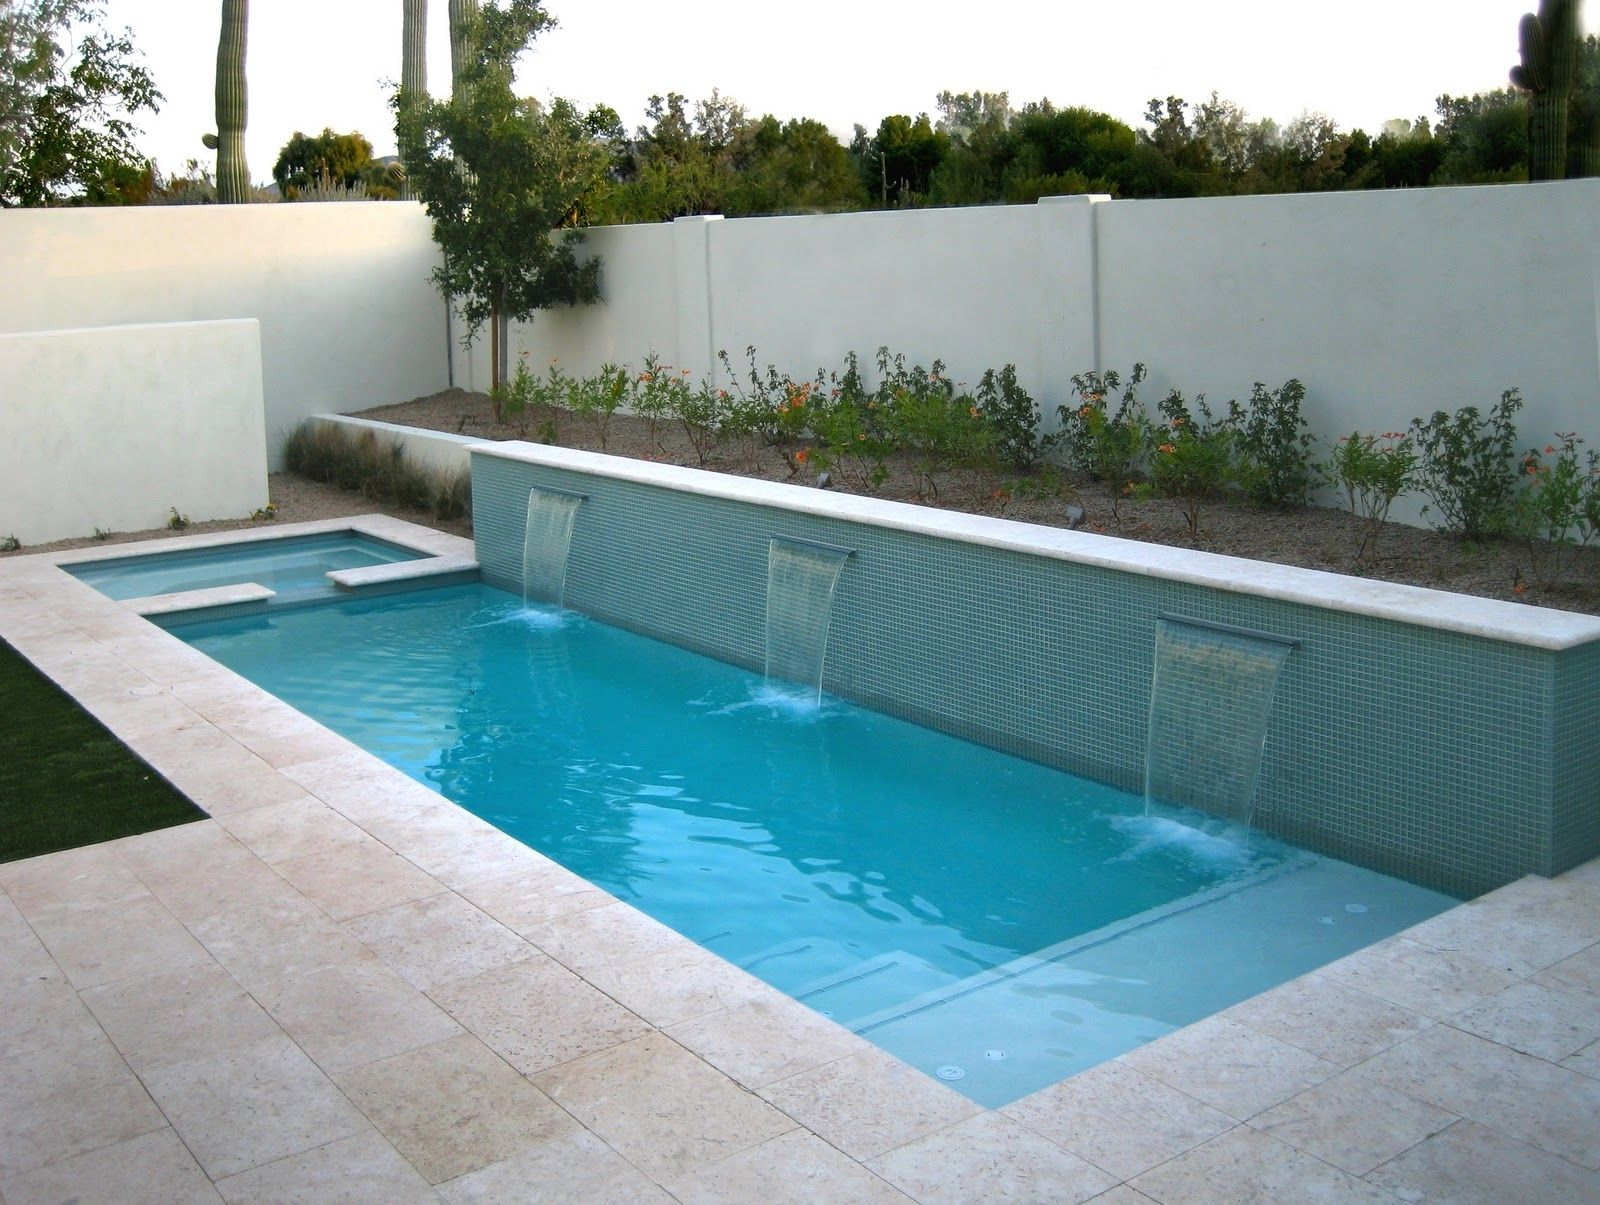 Great Pictures Of Backyard Pool Ideas With Small Garden In